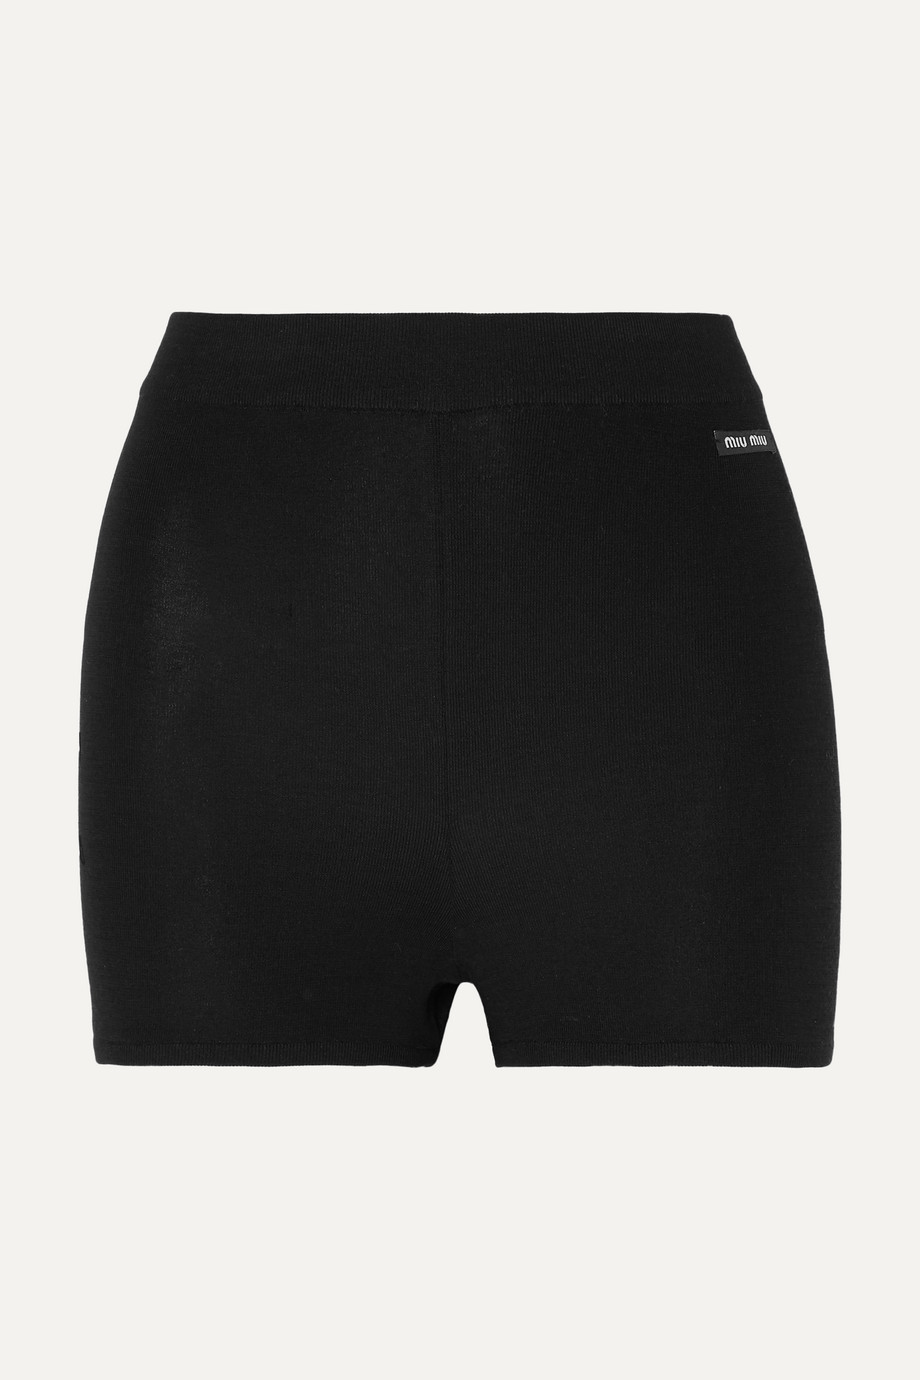 Miu Miu Wool shorts